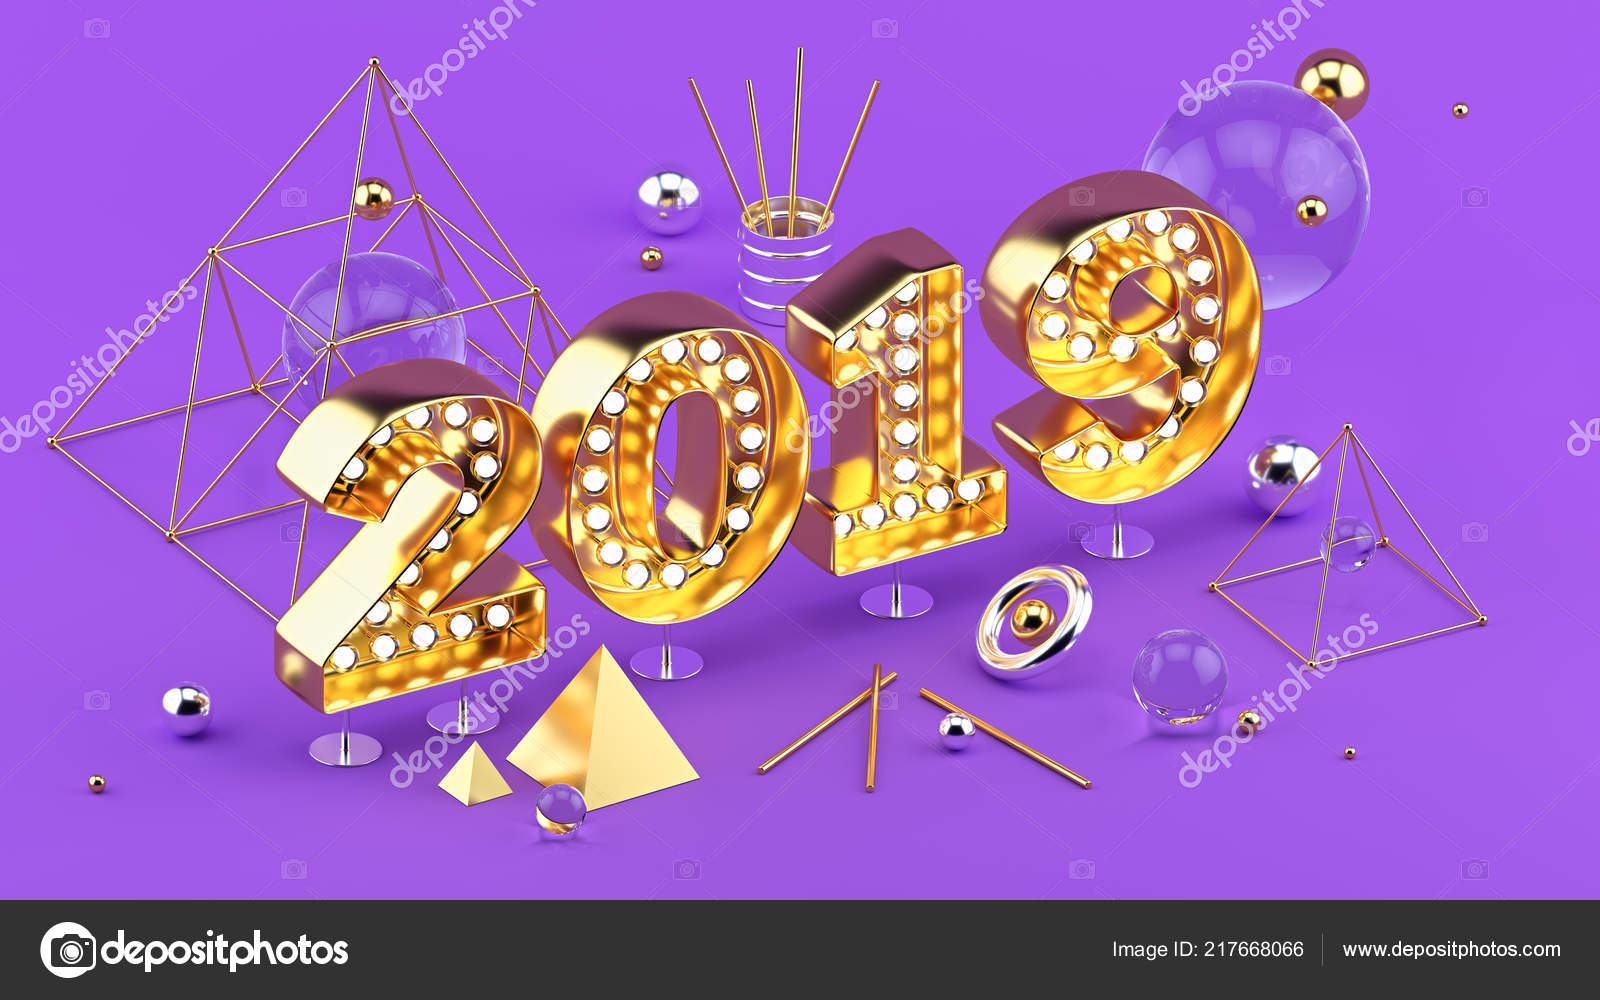 2019 happy new year isometric 3d illustration gold bright numbers 2019 with sparkling light bulbs trendy new year greeting card or poster 3d rendering